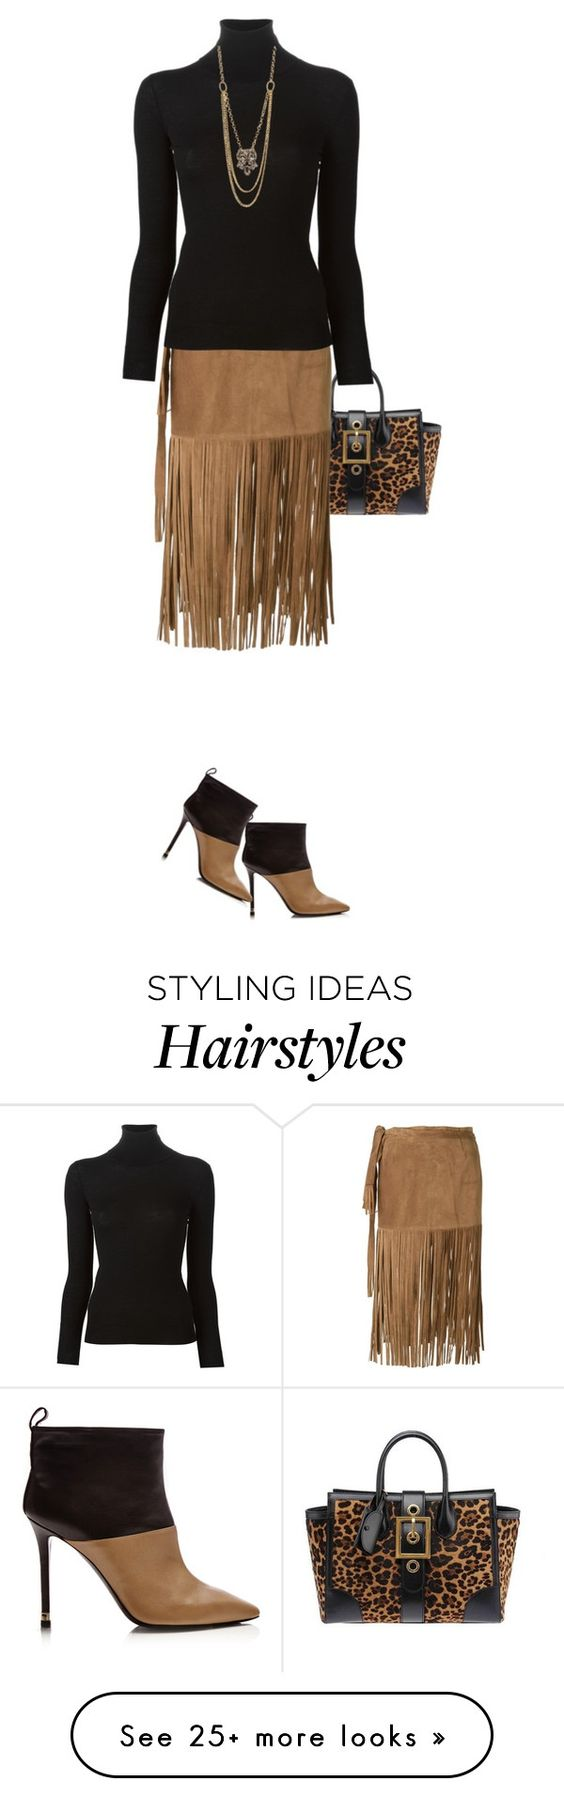 """""""."""" by fashionmonkey1 on Polyvore featuring Gucci, P.A.R.O.S.H., Ermanno Scervino, Nicholas Kirkwood, Yochi, women's clothing, women's fashion, women, female and woman"""